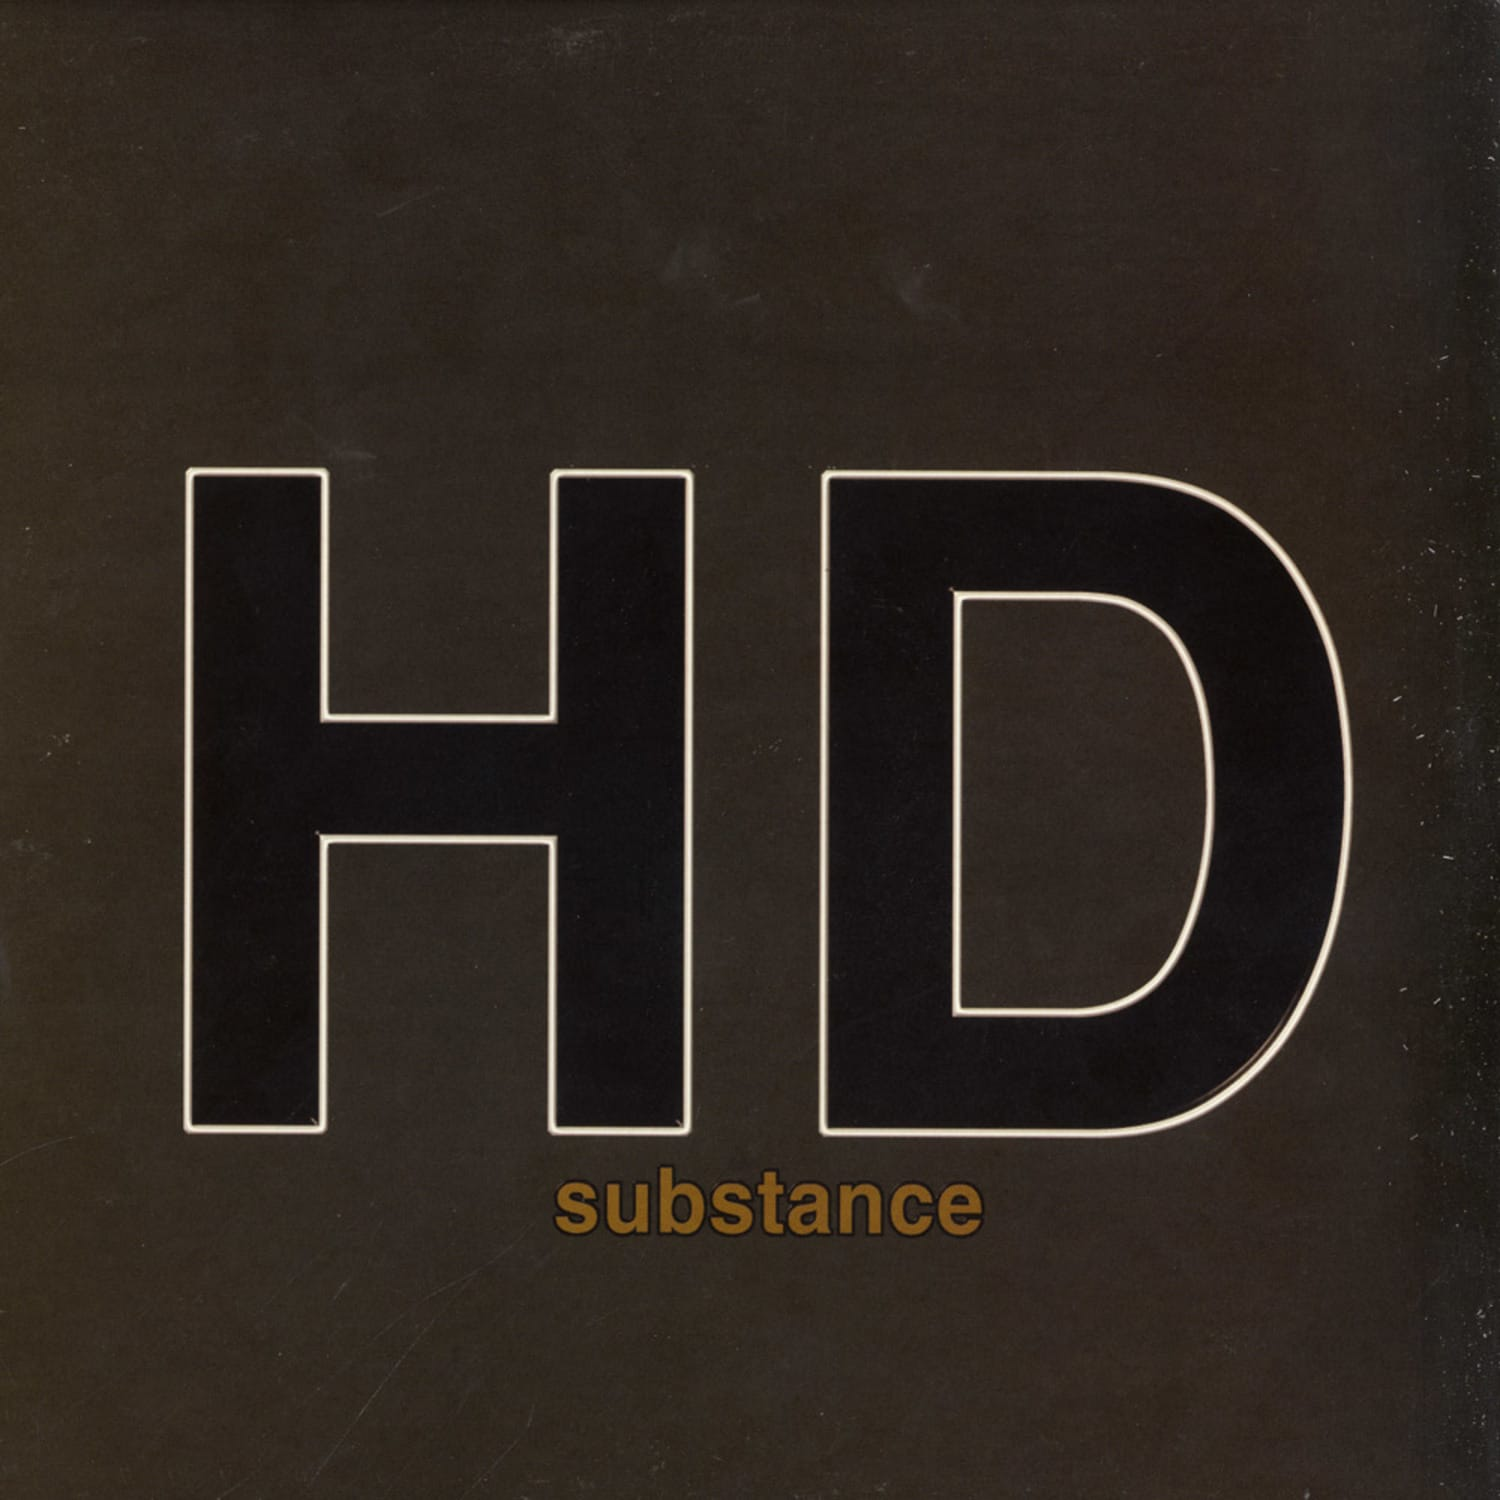 Hd Substance - ELEVEN